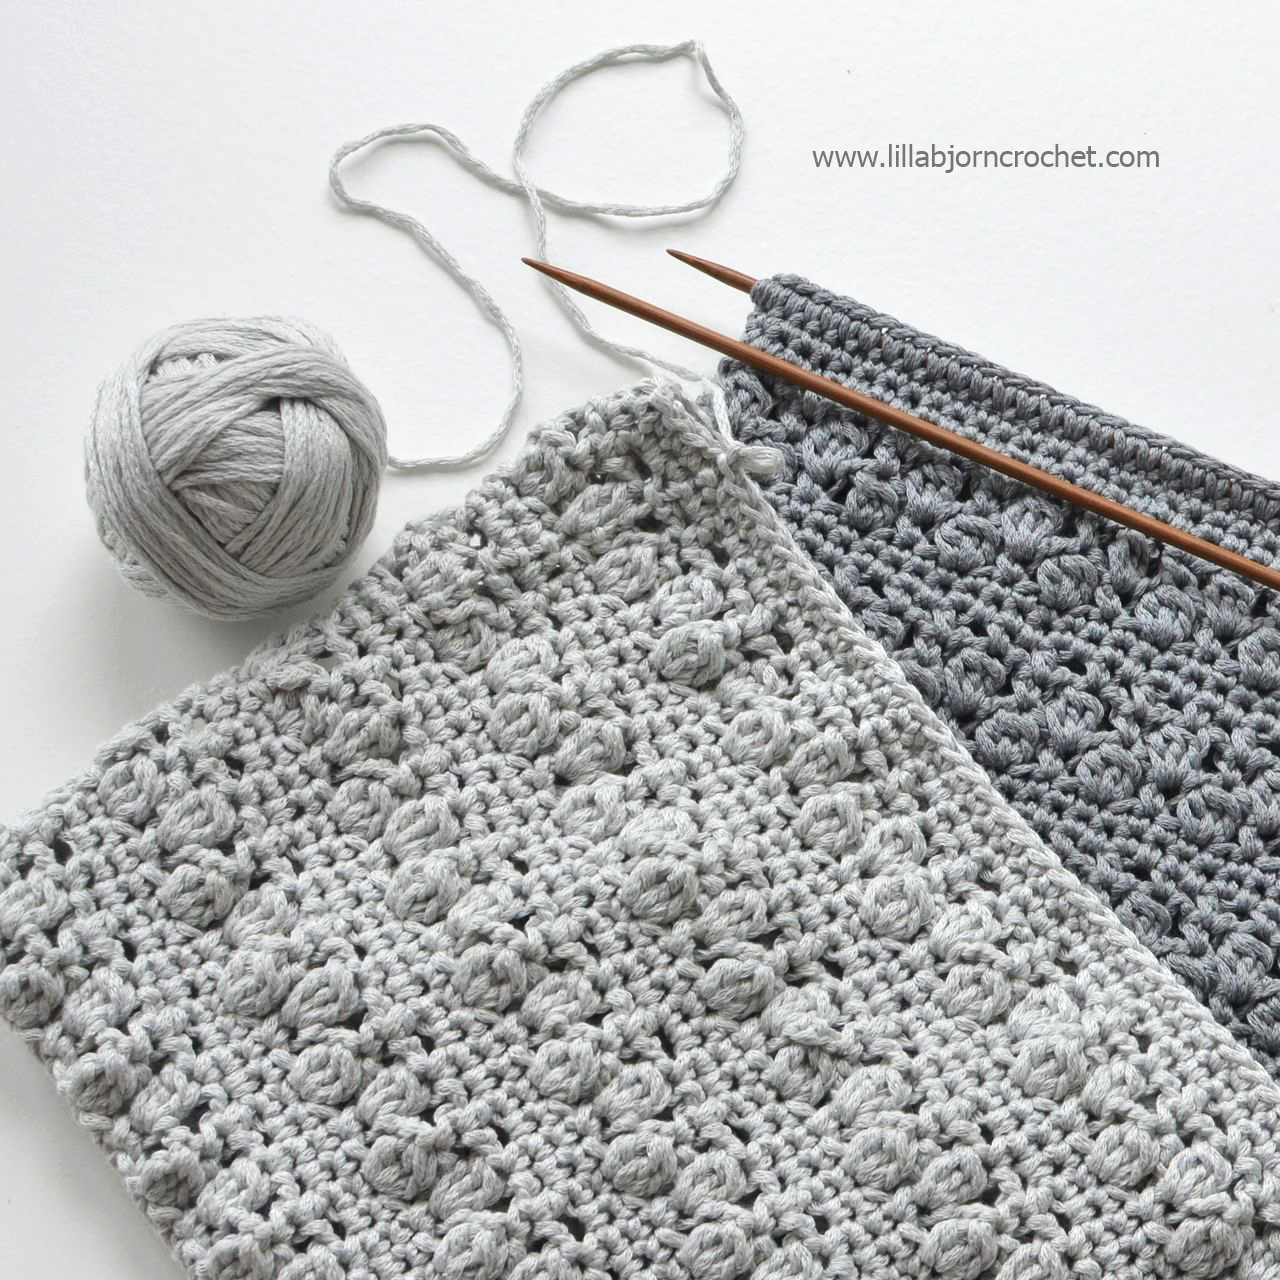 Crochet project with needles - Lilla Bjorn Crochet